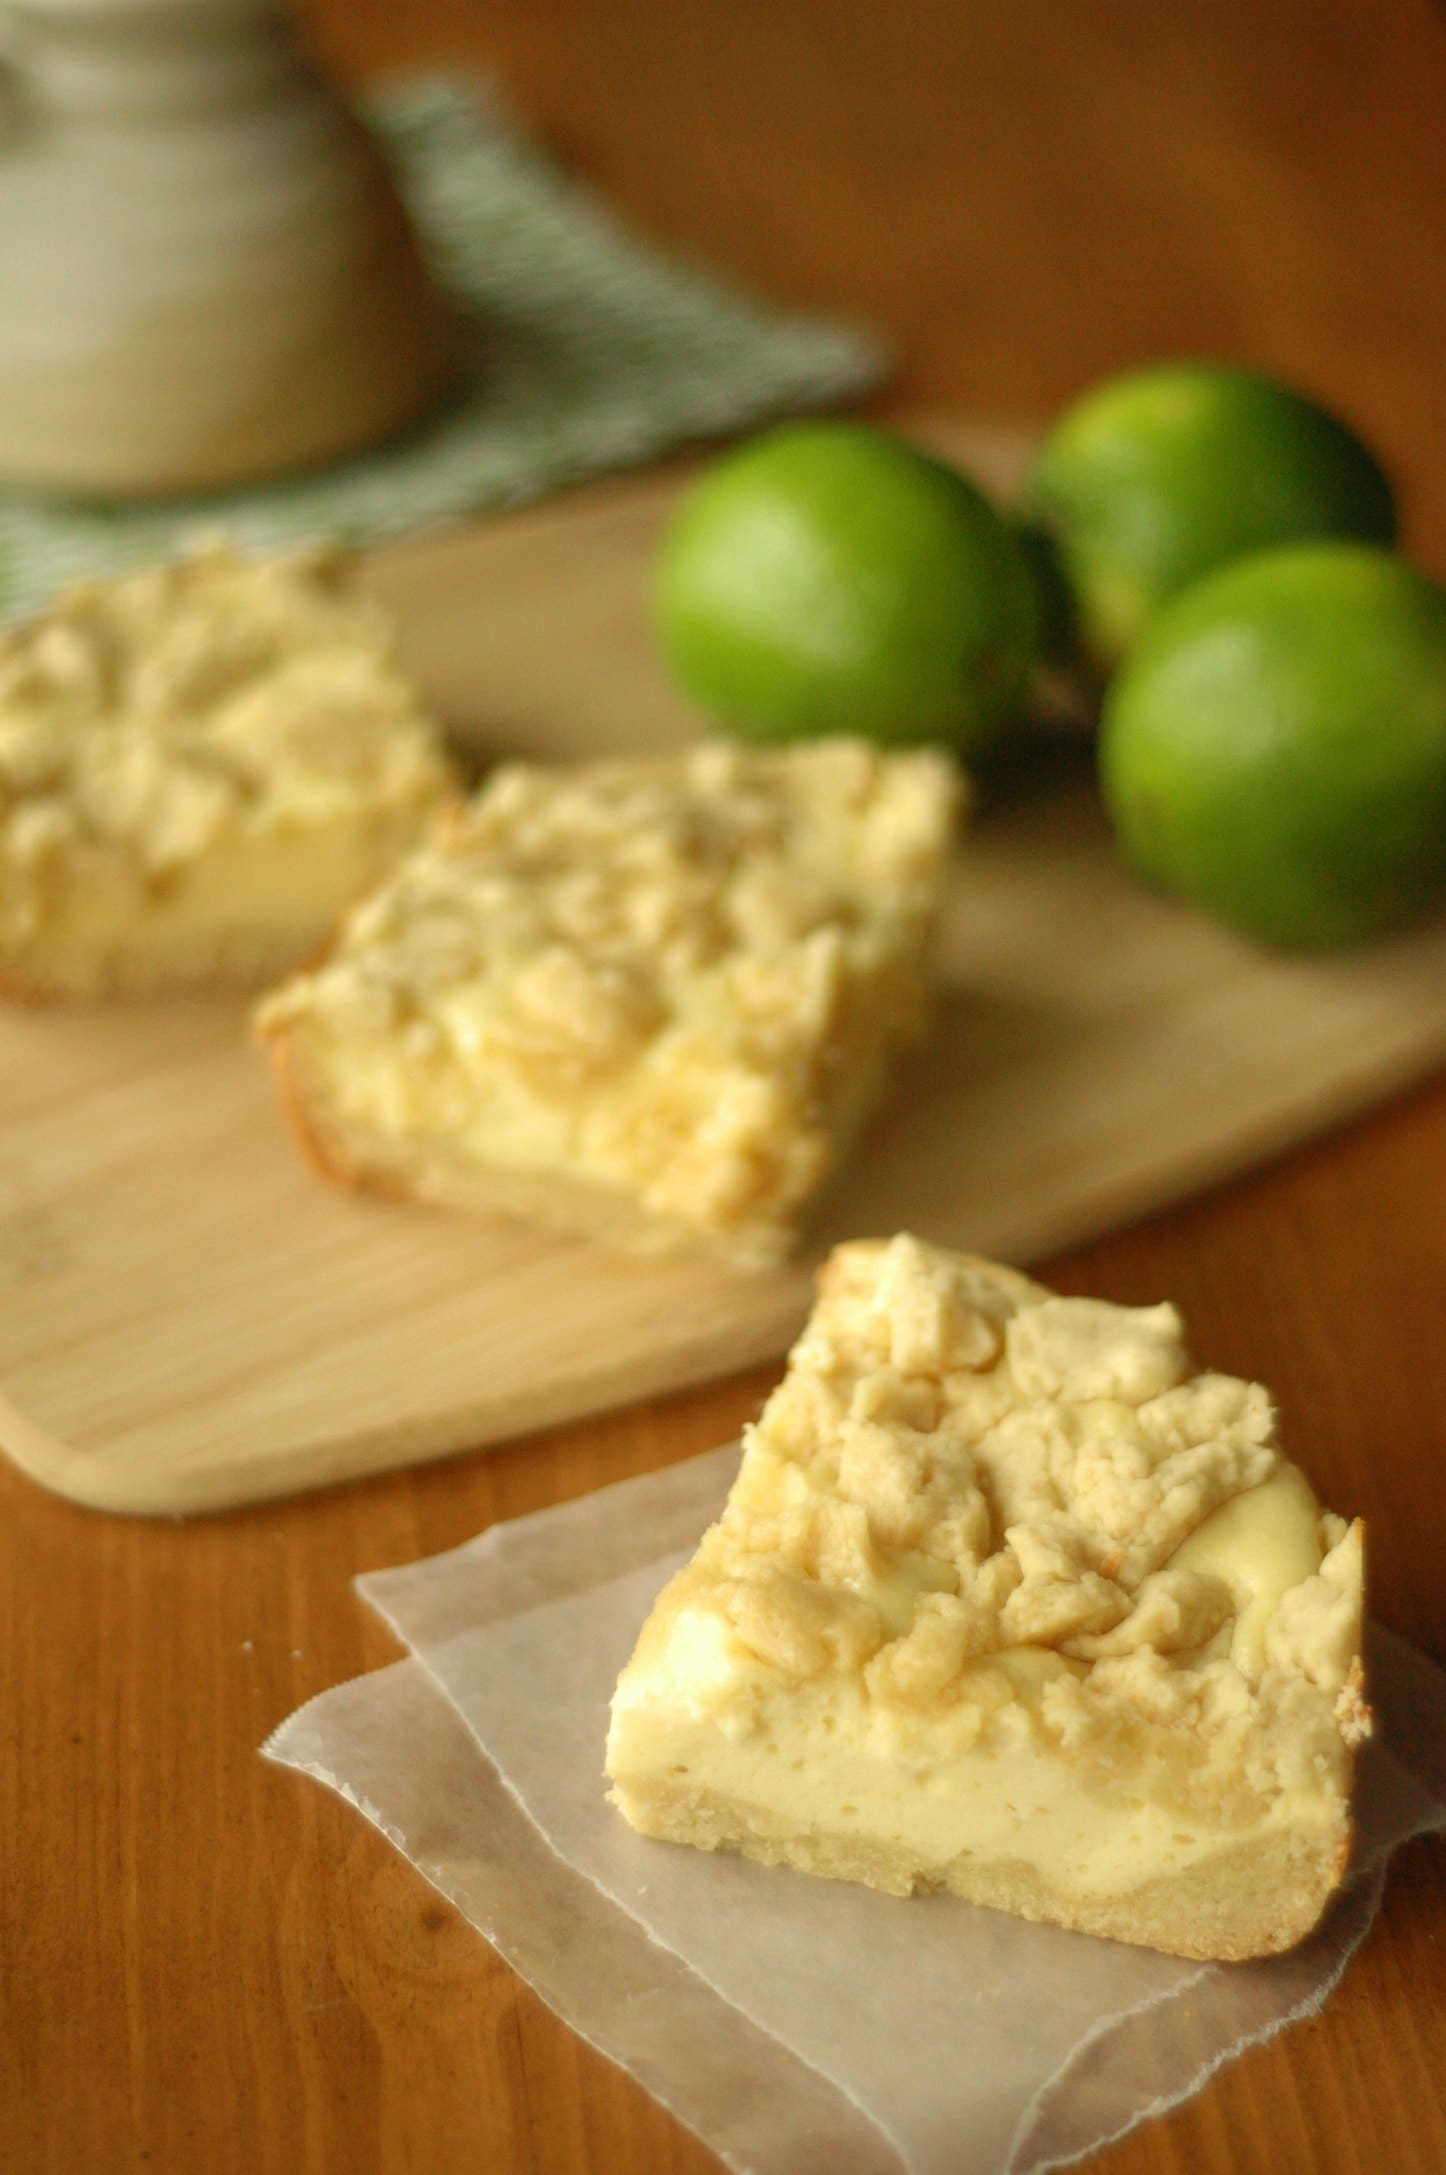 Cheesecake Cookie Bar on wax paper with two bars and three limes on cutting board in background